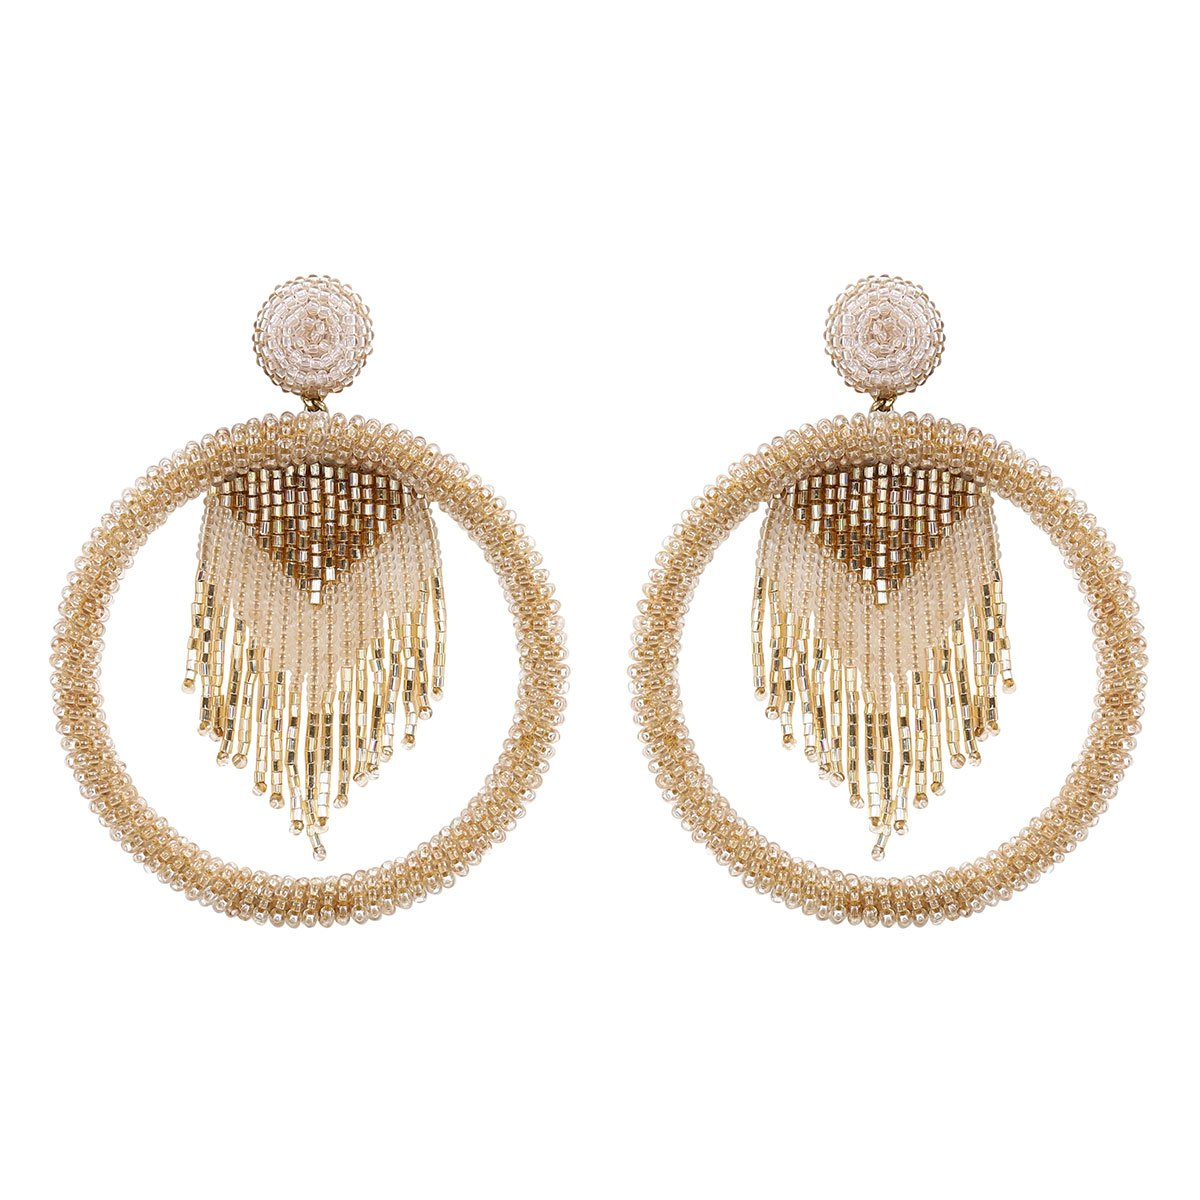 Deepa by Deepa Gurnani Handmade Sadia Earrings in Gold